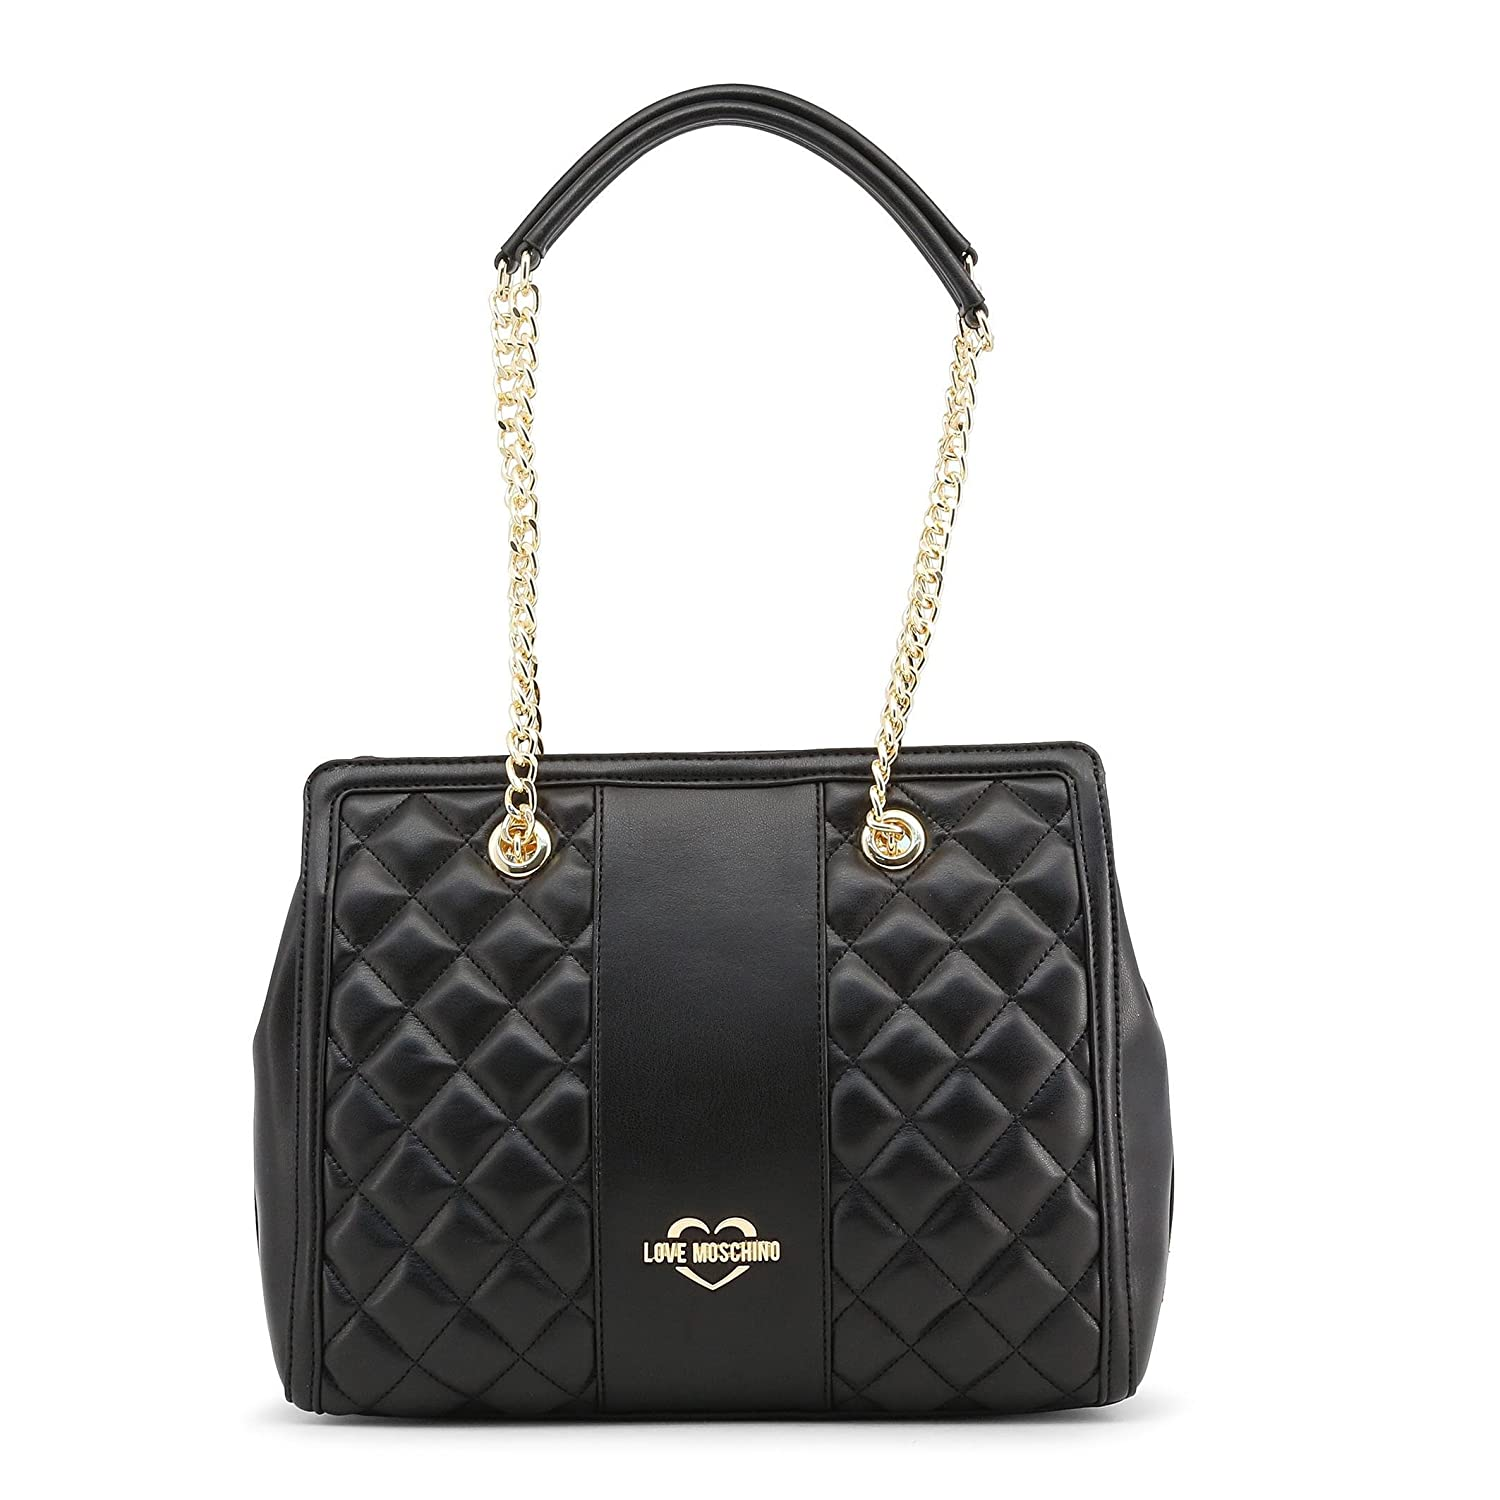 350ff87edb30 Amazon.com  LOVE Moschino Women s Quilted Shoulder Bag Chain Strap Black Gold  Chain One Size  Shoes